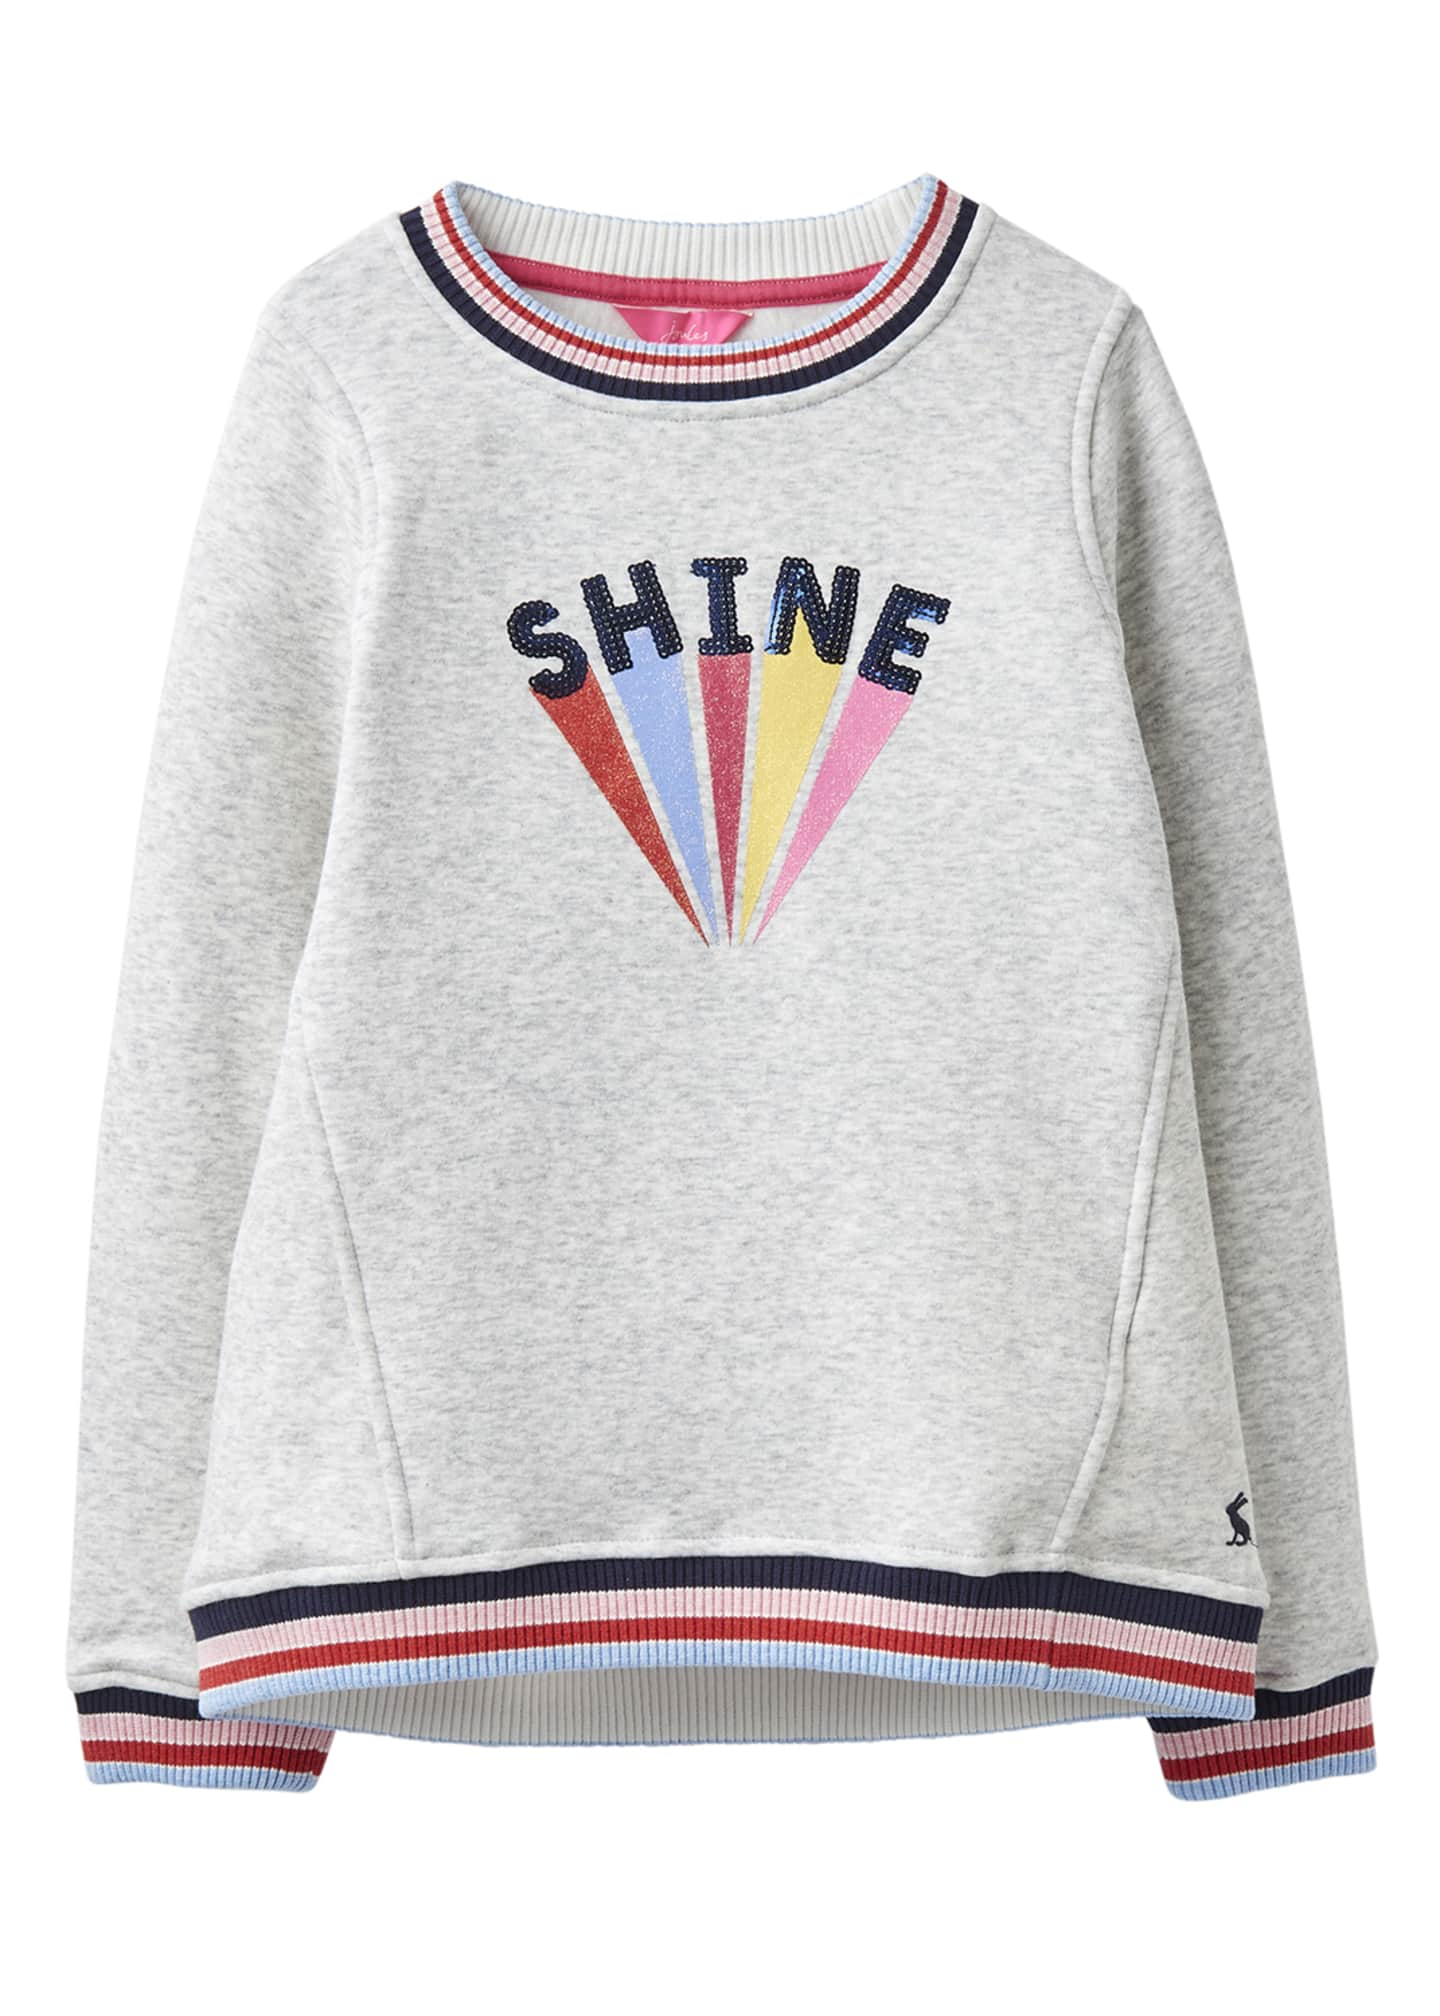 Joules Girl's Viola Shine Striped-Trim Sweatshirt, Size 4-10